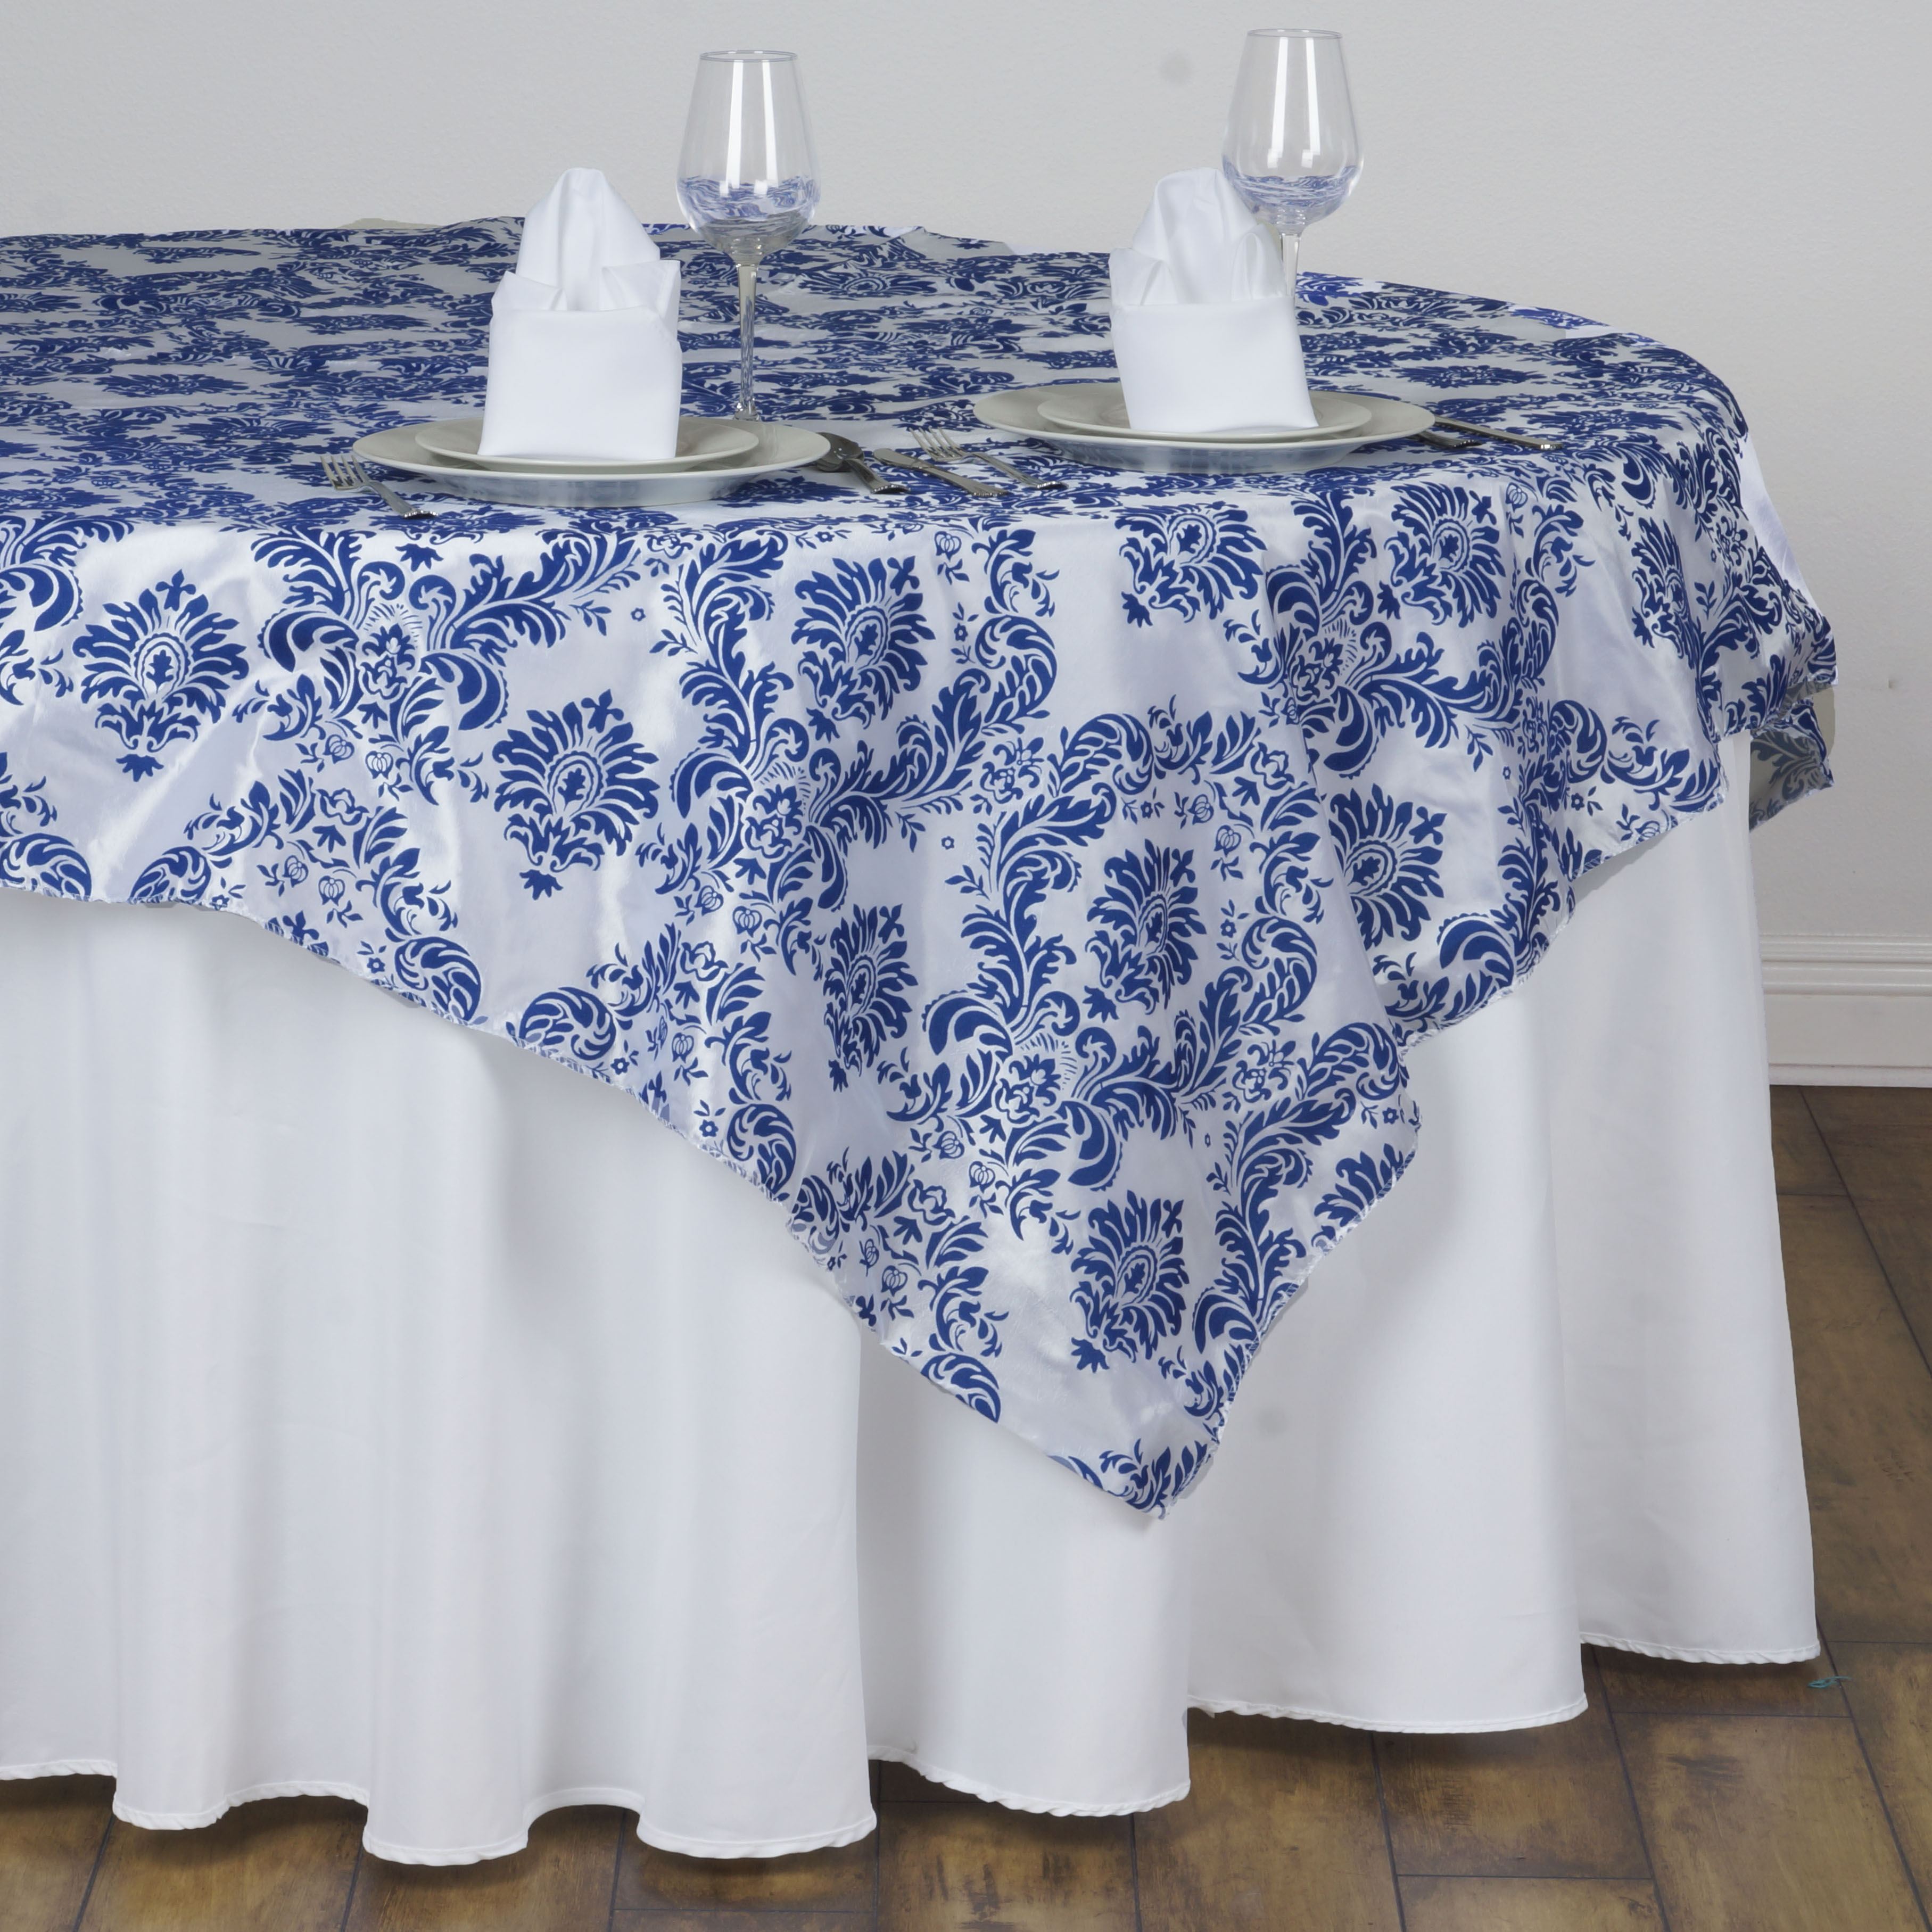 10 Pcs 90x90 Damask Flocking Table Top OVERLAYS Wedding Party Wholesale